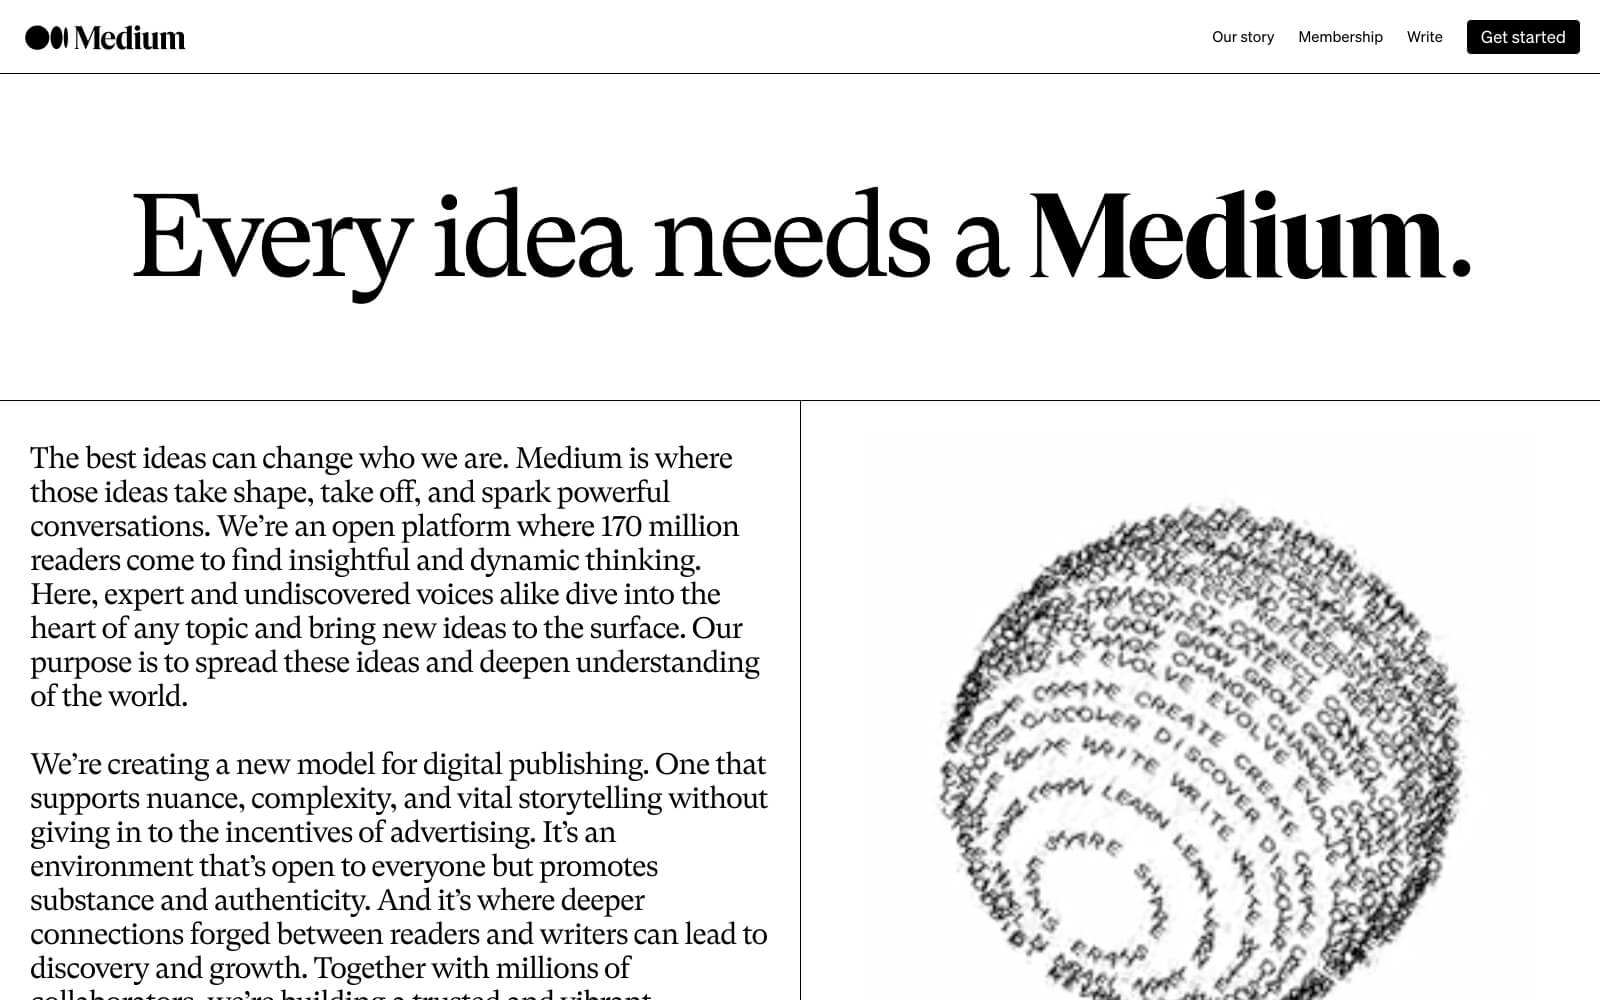 """The Medium website boldy proclaiming """"Every idea needs a Medium"""" as their tagline above a spinning globe of words like create, discover, learn, share, evolve, etc."""